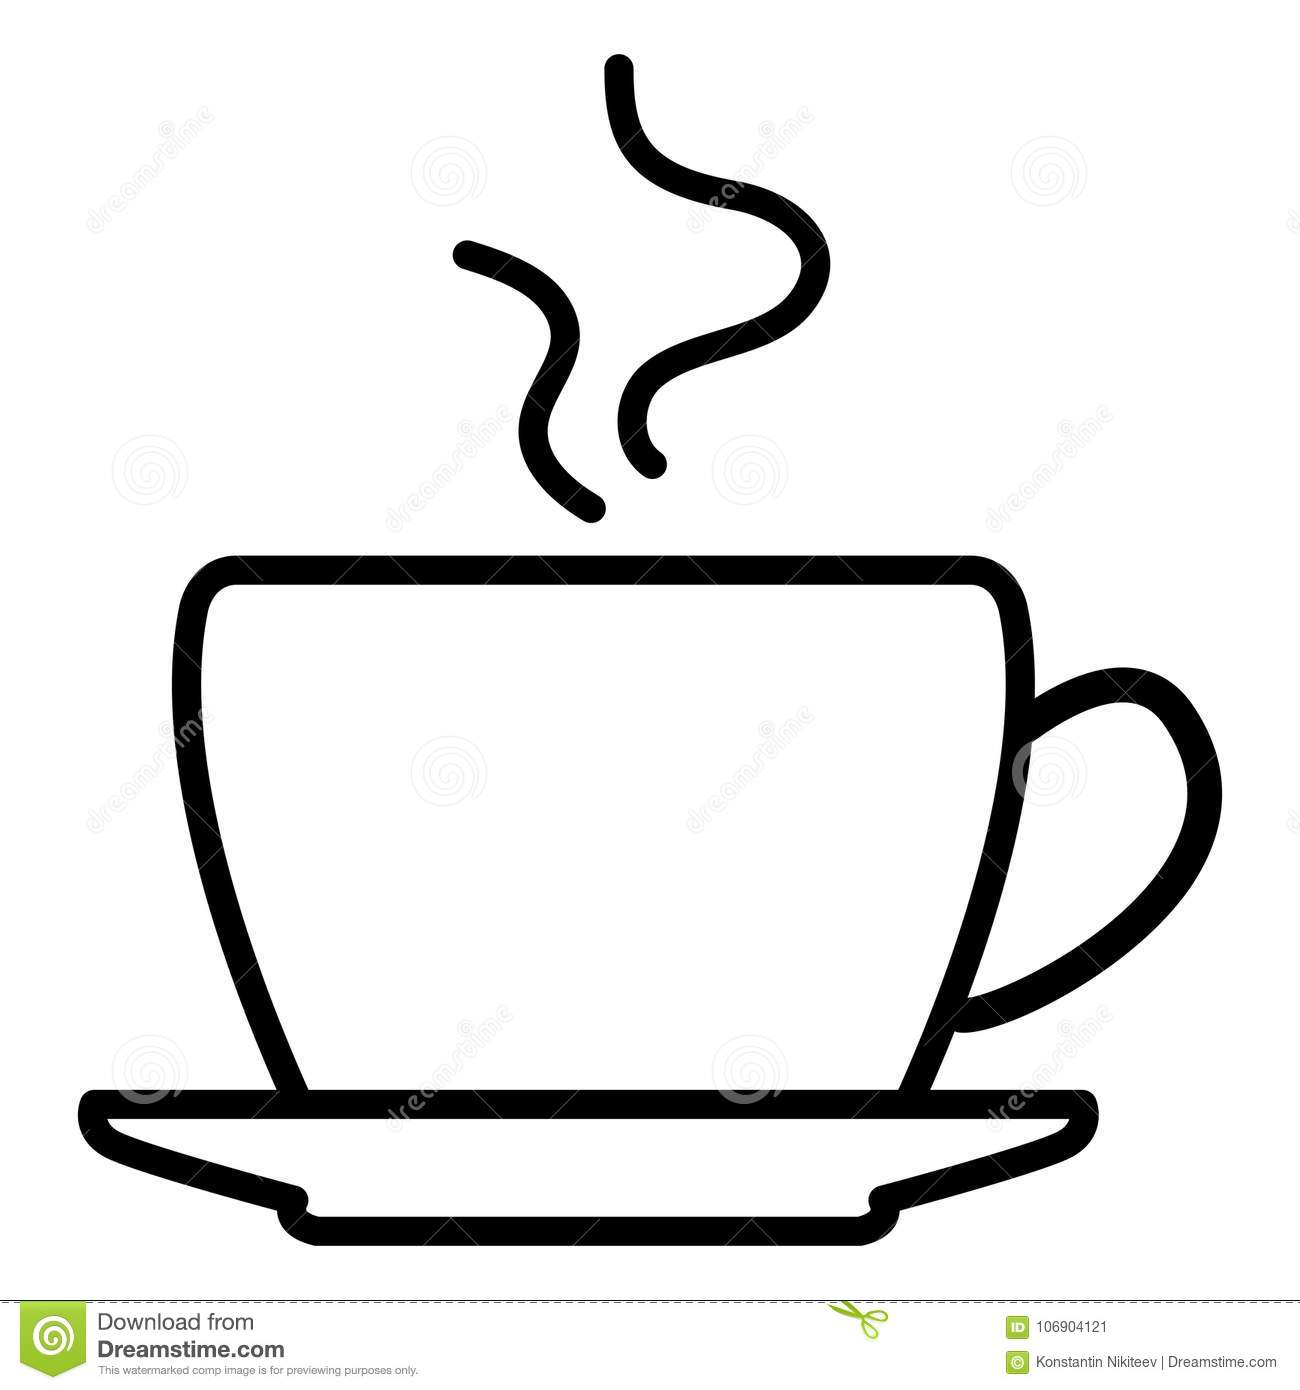 Vector Single Icon Of Coffee Cup With Saucer Stock Vector Illustration Of Break Cappuccino 106904121